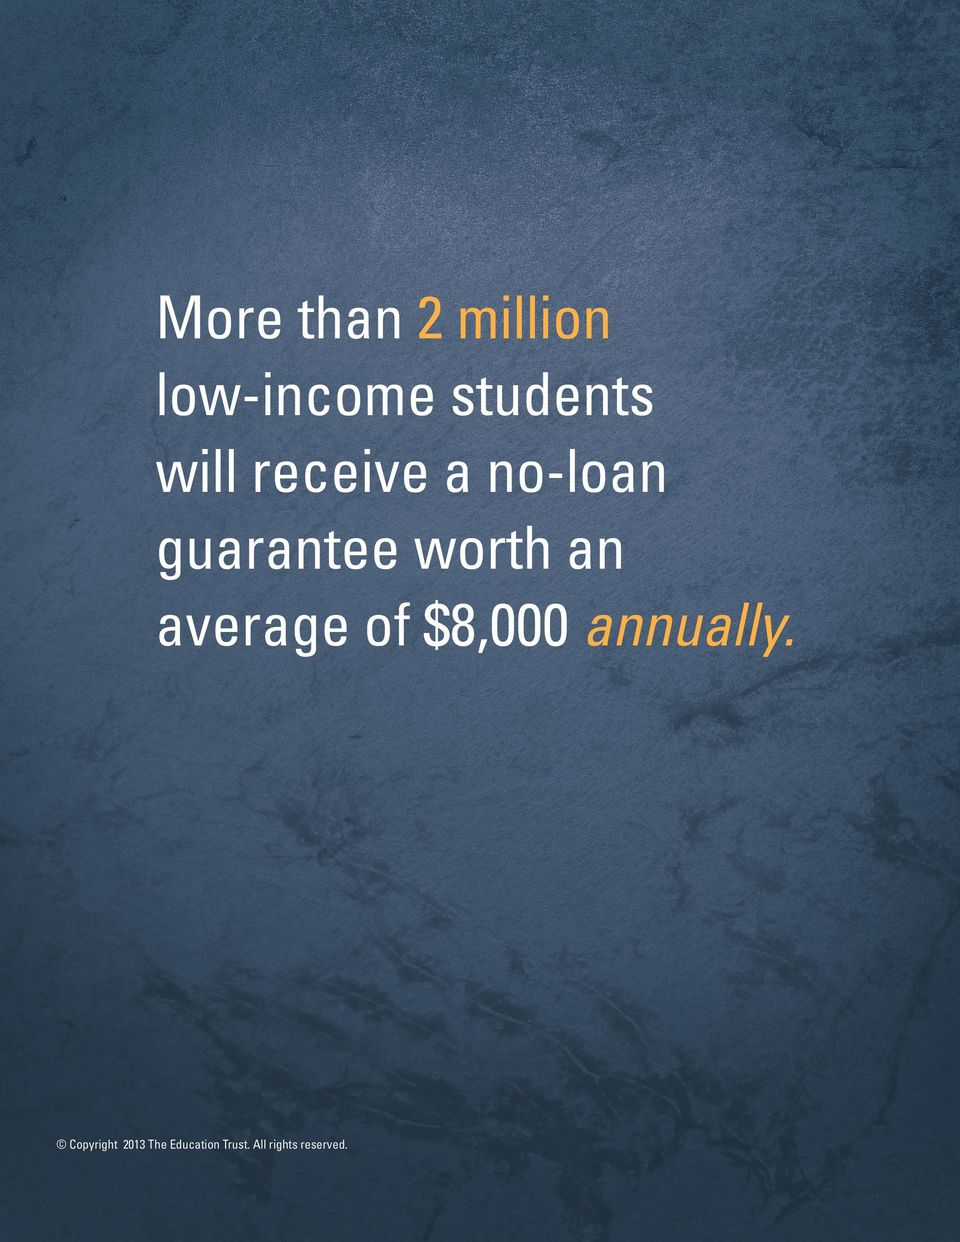 average of $8,000 annually.